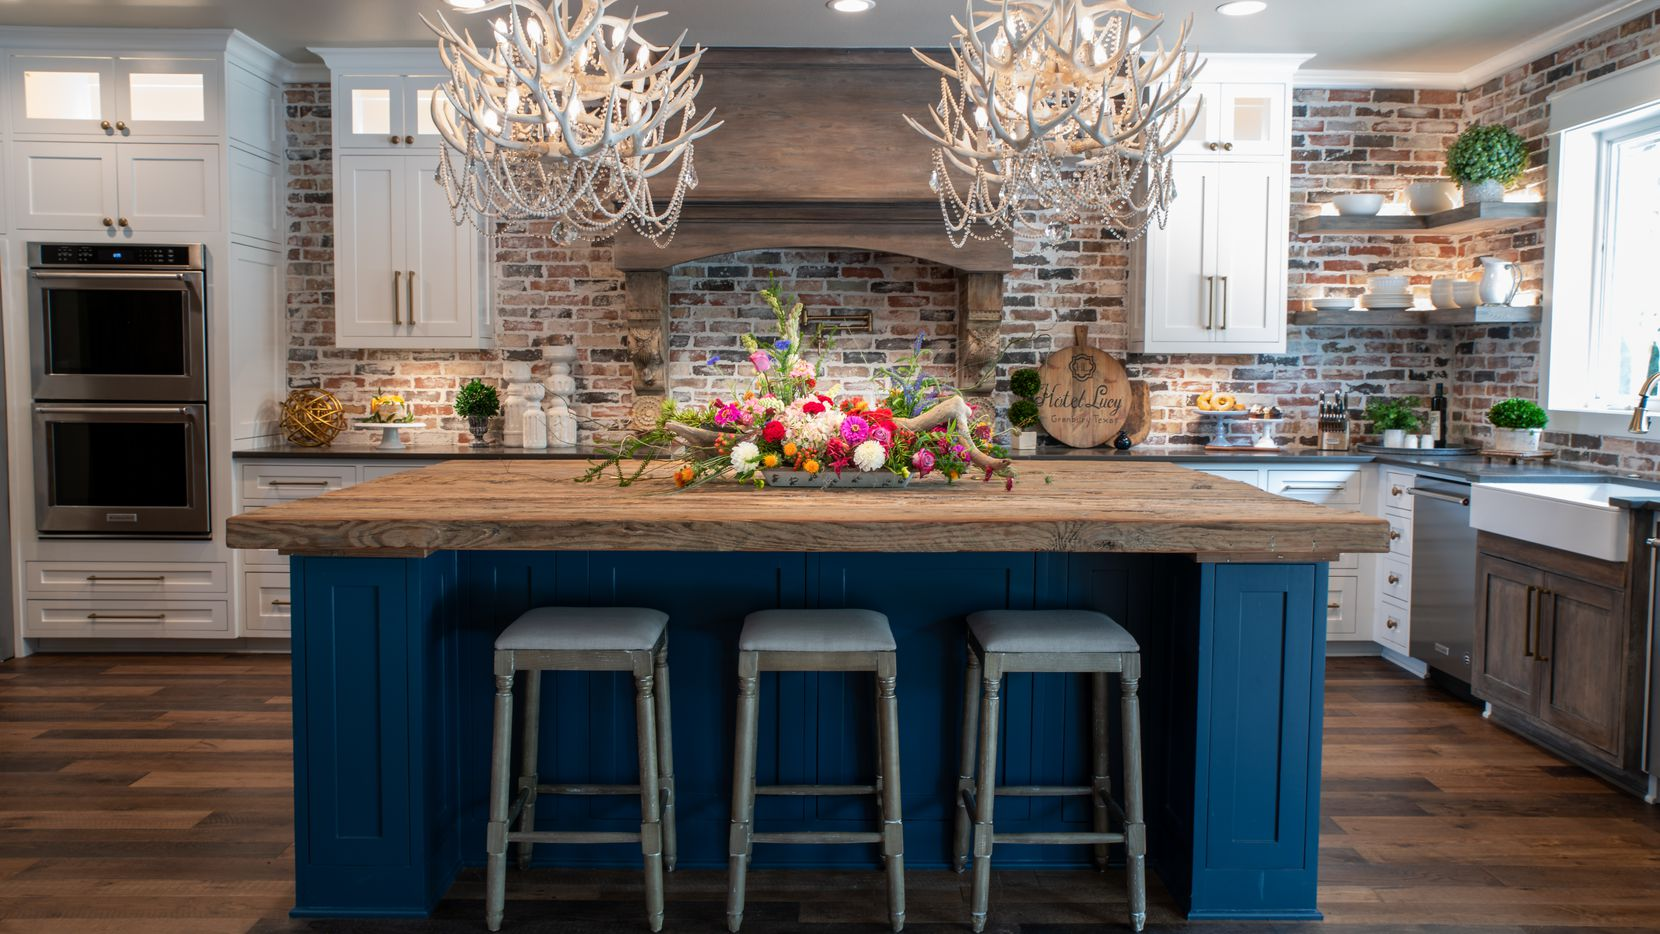 Guests can enjoy a chef-style kitchen at Hotel Lucy in Granbury.